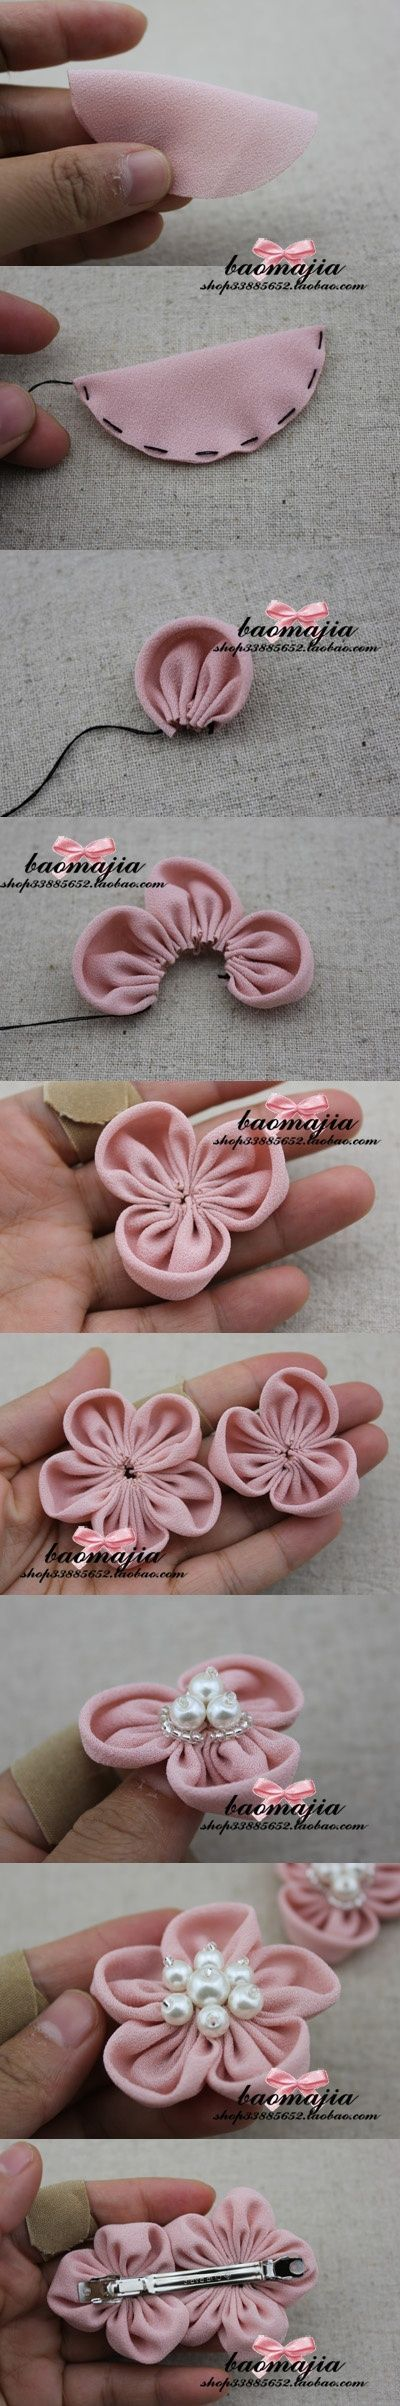 Love this little flower tutorial, looks super easy!  Would be cute if I ever have a girl.